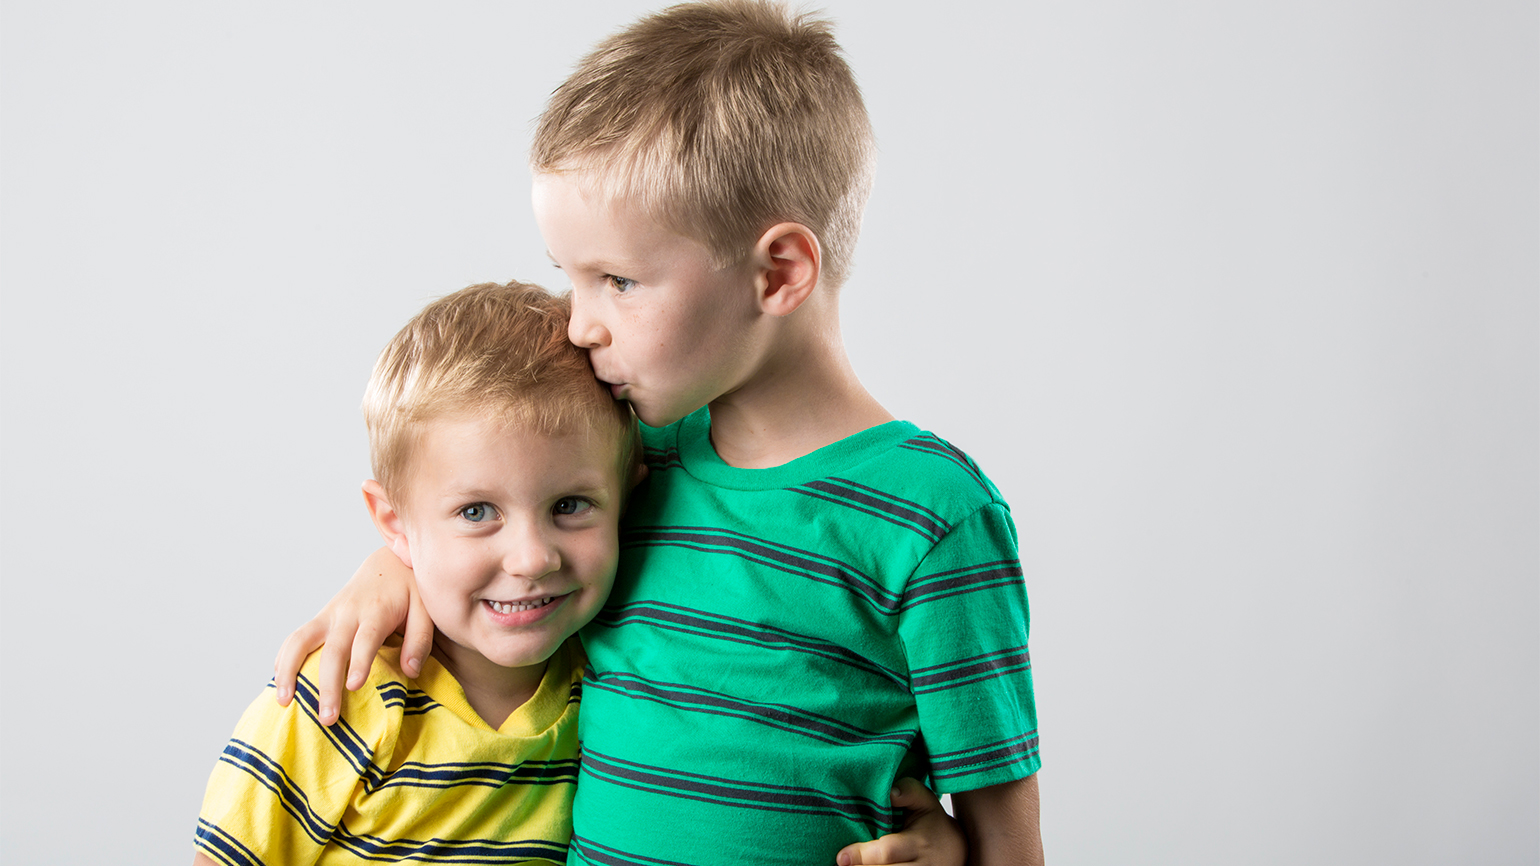 A boy hugs his younger brother in forgiveness